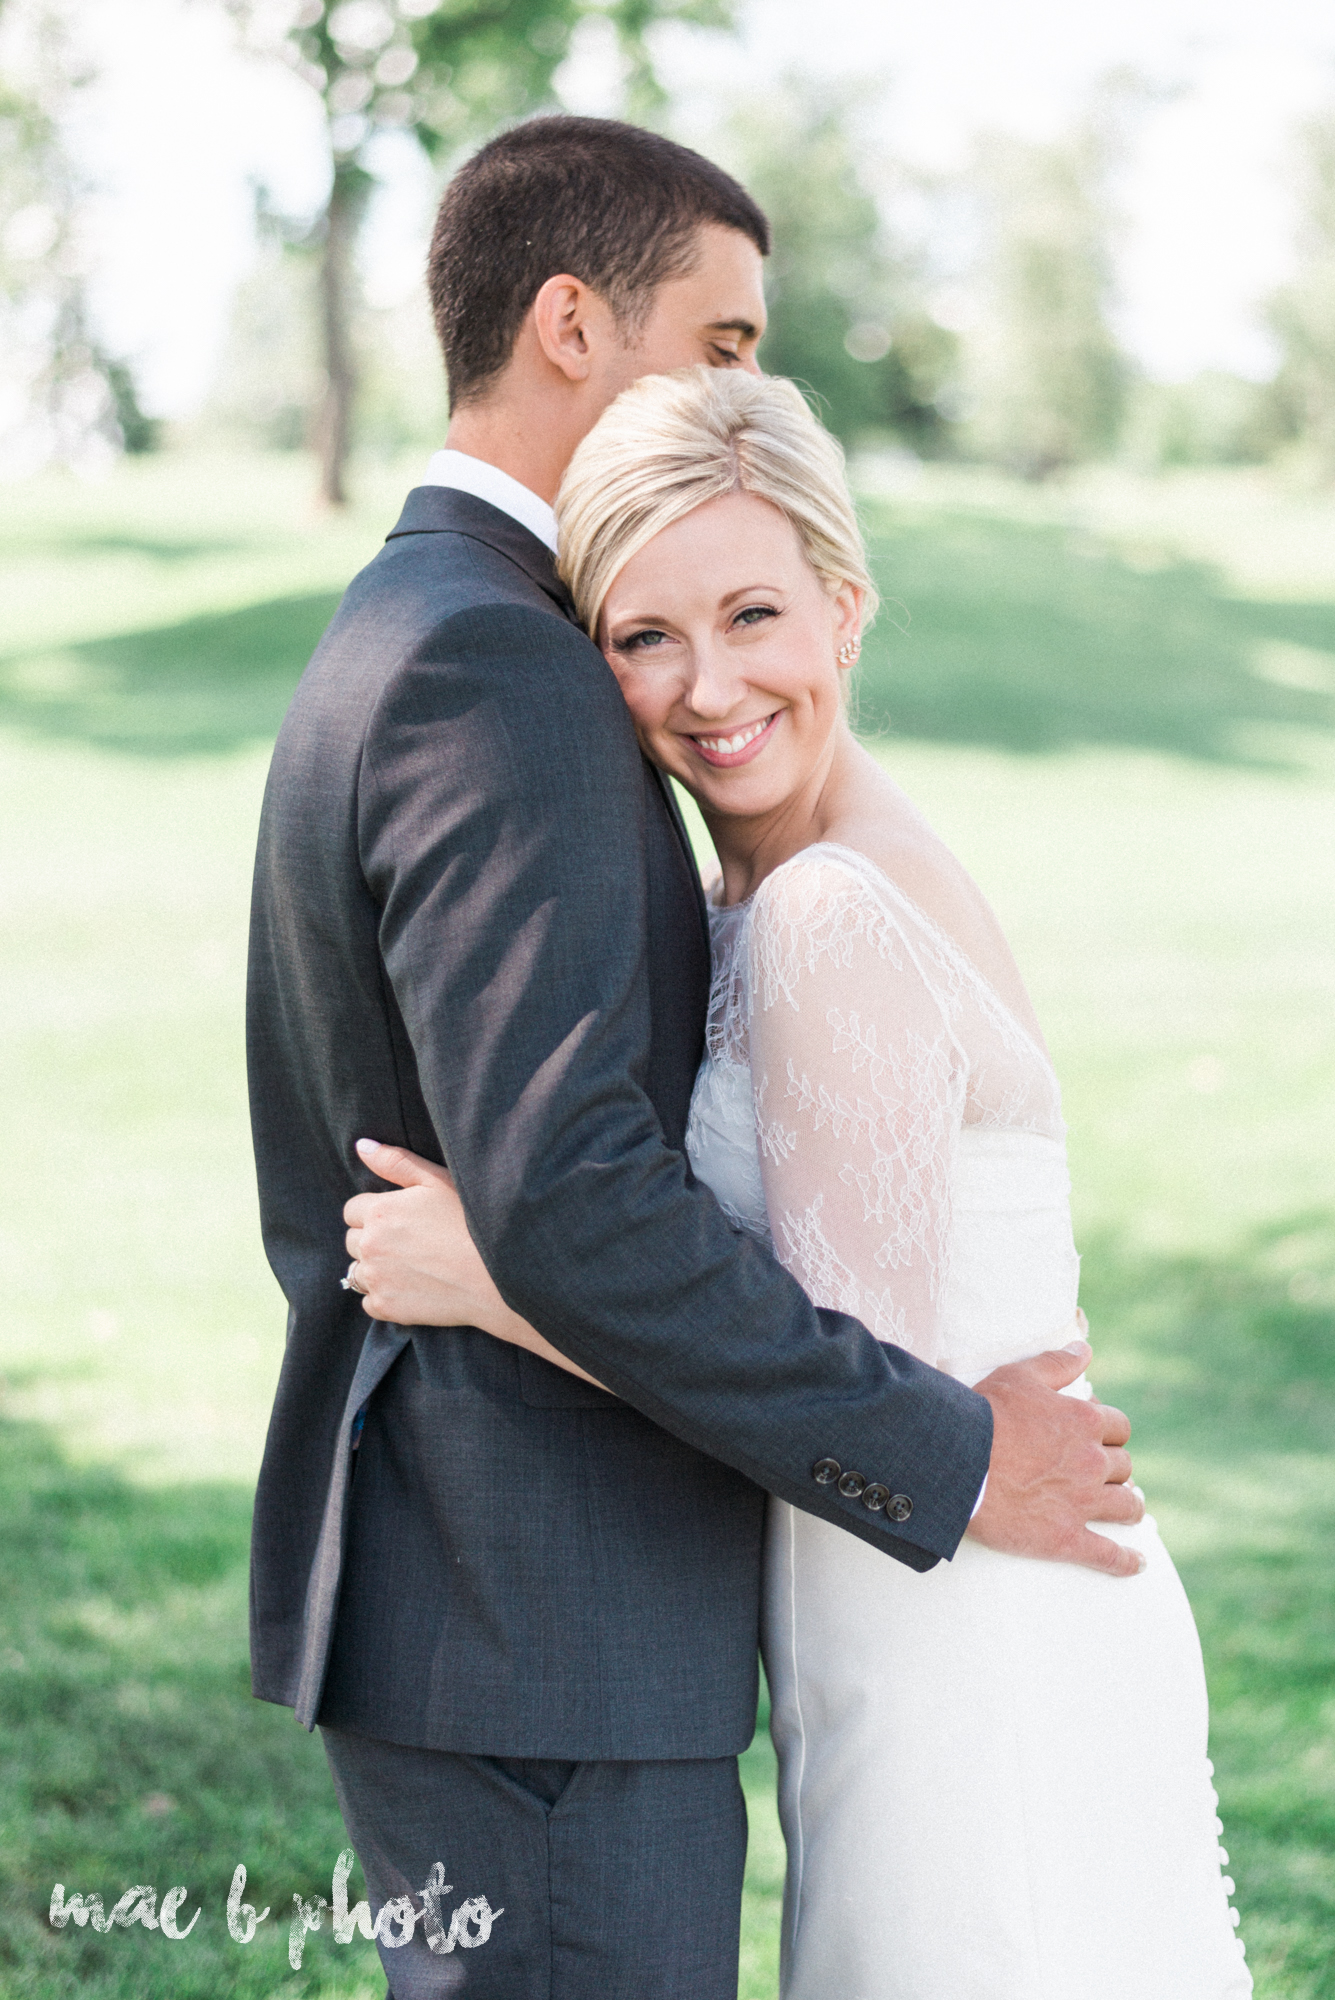 emily and michael's industrial chic summer country club wedding at the lake club in poland ohio photographed by cleveland wedding photographer mae b photo-65.jpg